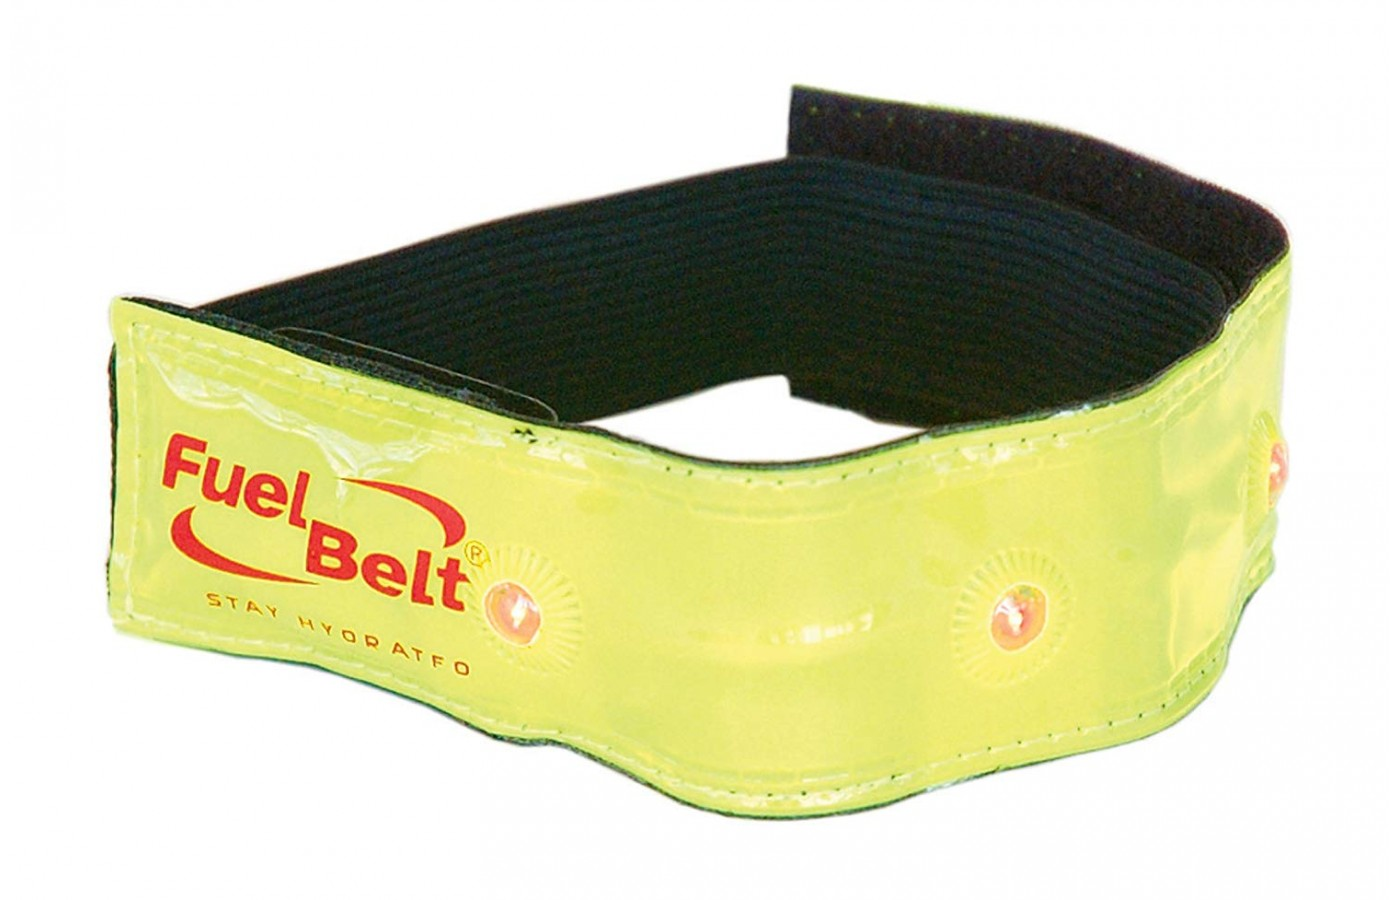 Fuel Belt Armband View